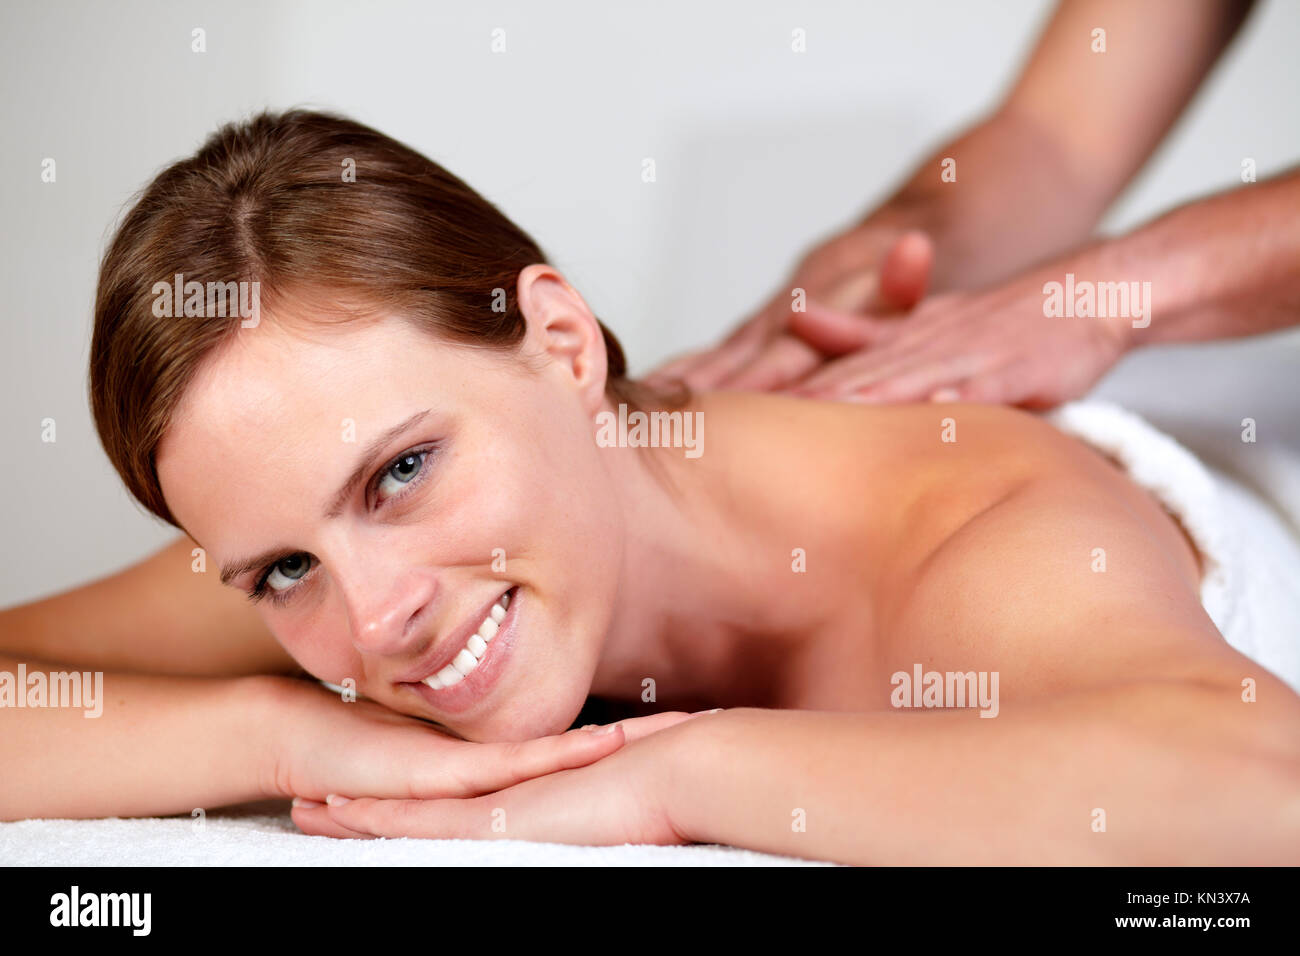 Close-up portrait of a young pretty woman smiling and relaxing while getting a massage from a professional masseuse Stock Photo